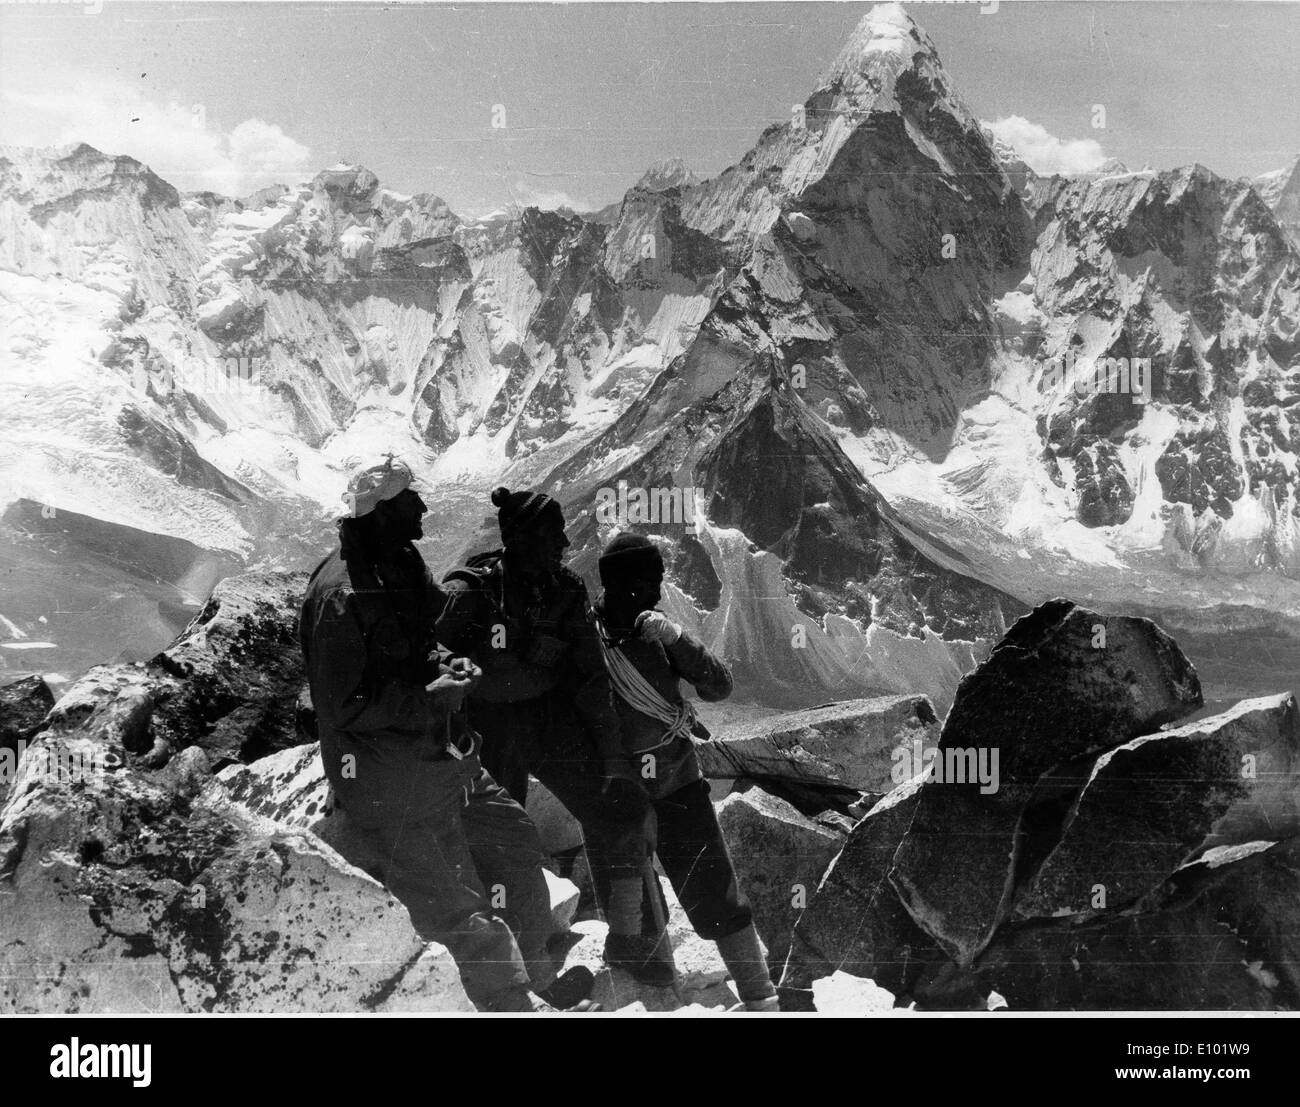 Climbers. MOUNT EVEREST is Earth's highest mountain, with a peak at 8,848 metres above sea level and the 5th tallest mountain - Stock Image